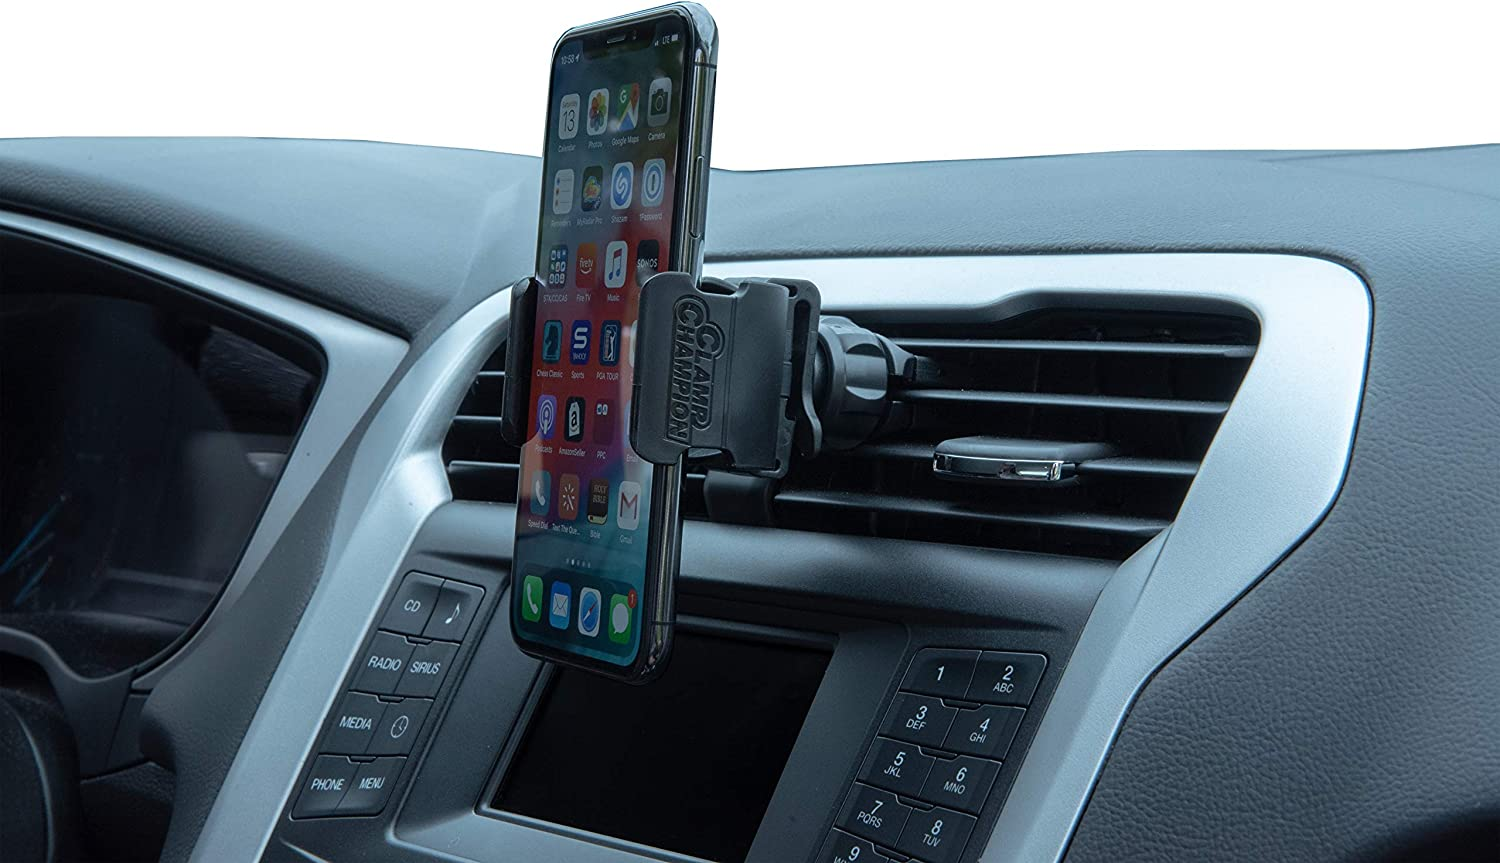 New Google Pixel 3 XL and All Phones Samsung Galaxy S9+ Car Phone Mount Air Vent Cell Phone Holder for Car Plus Bonus Rear Seat Holder Compatible with iPhone 11//11 Pro//Xs//XS Max // 8//7 // 6